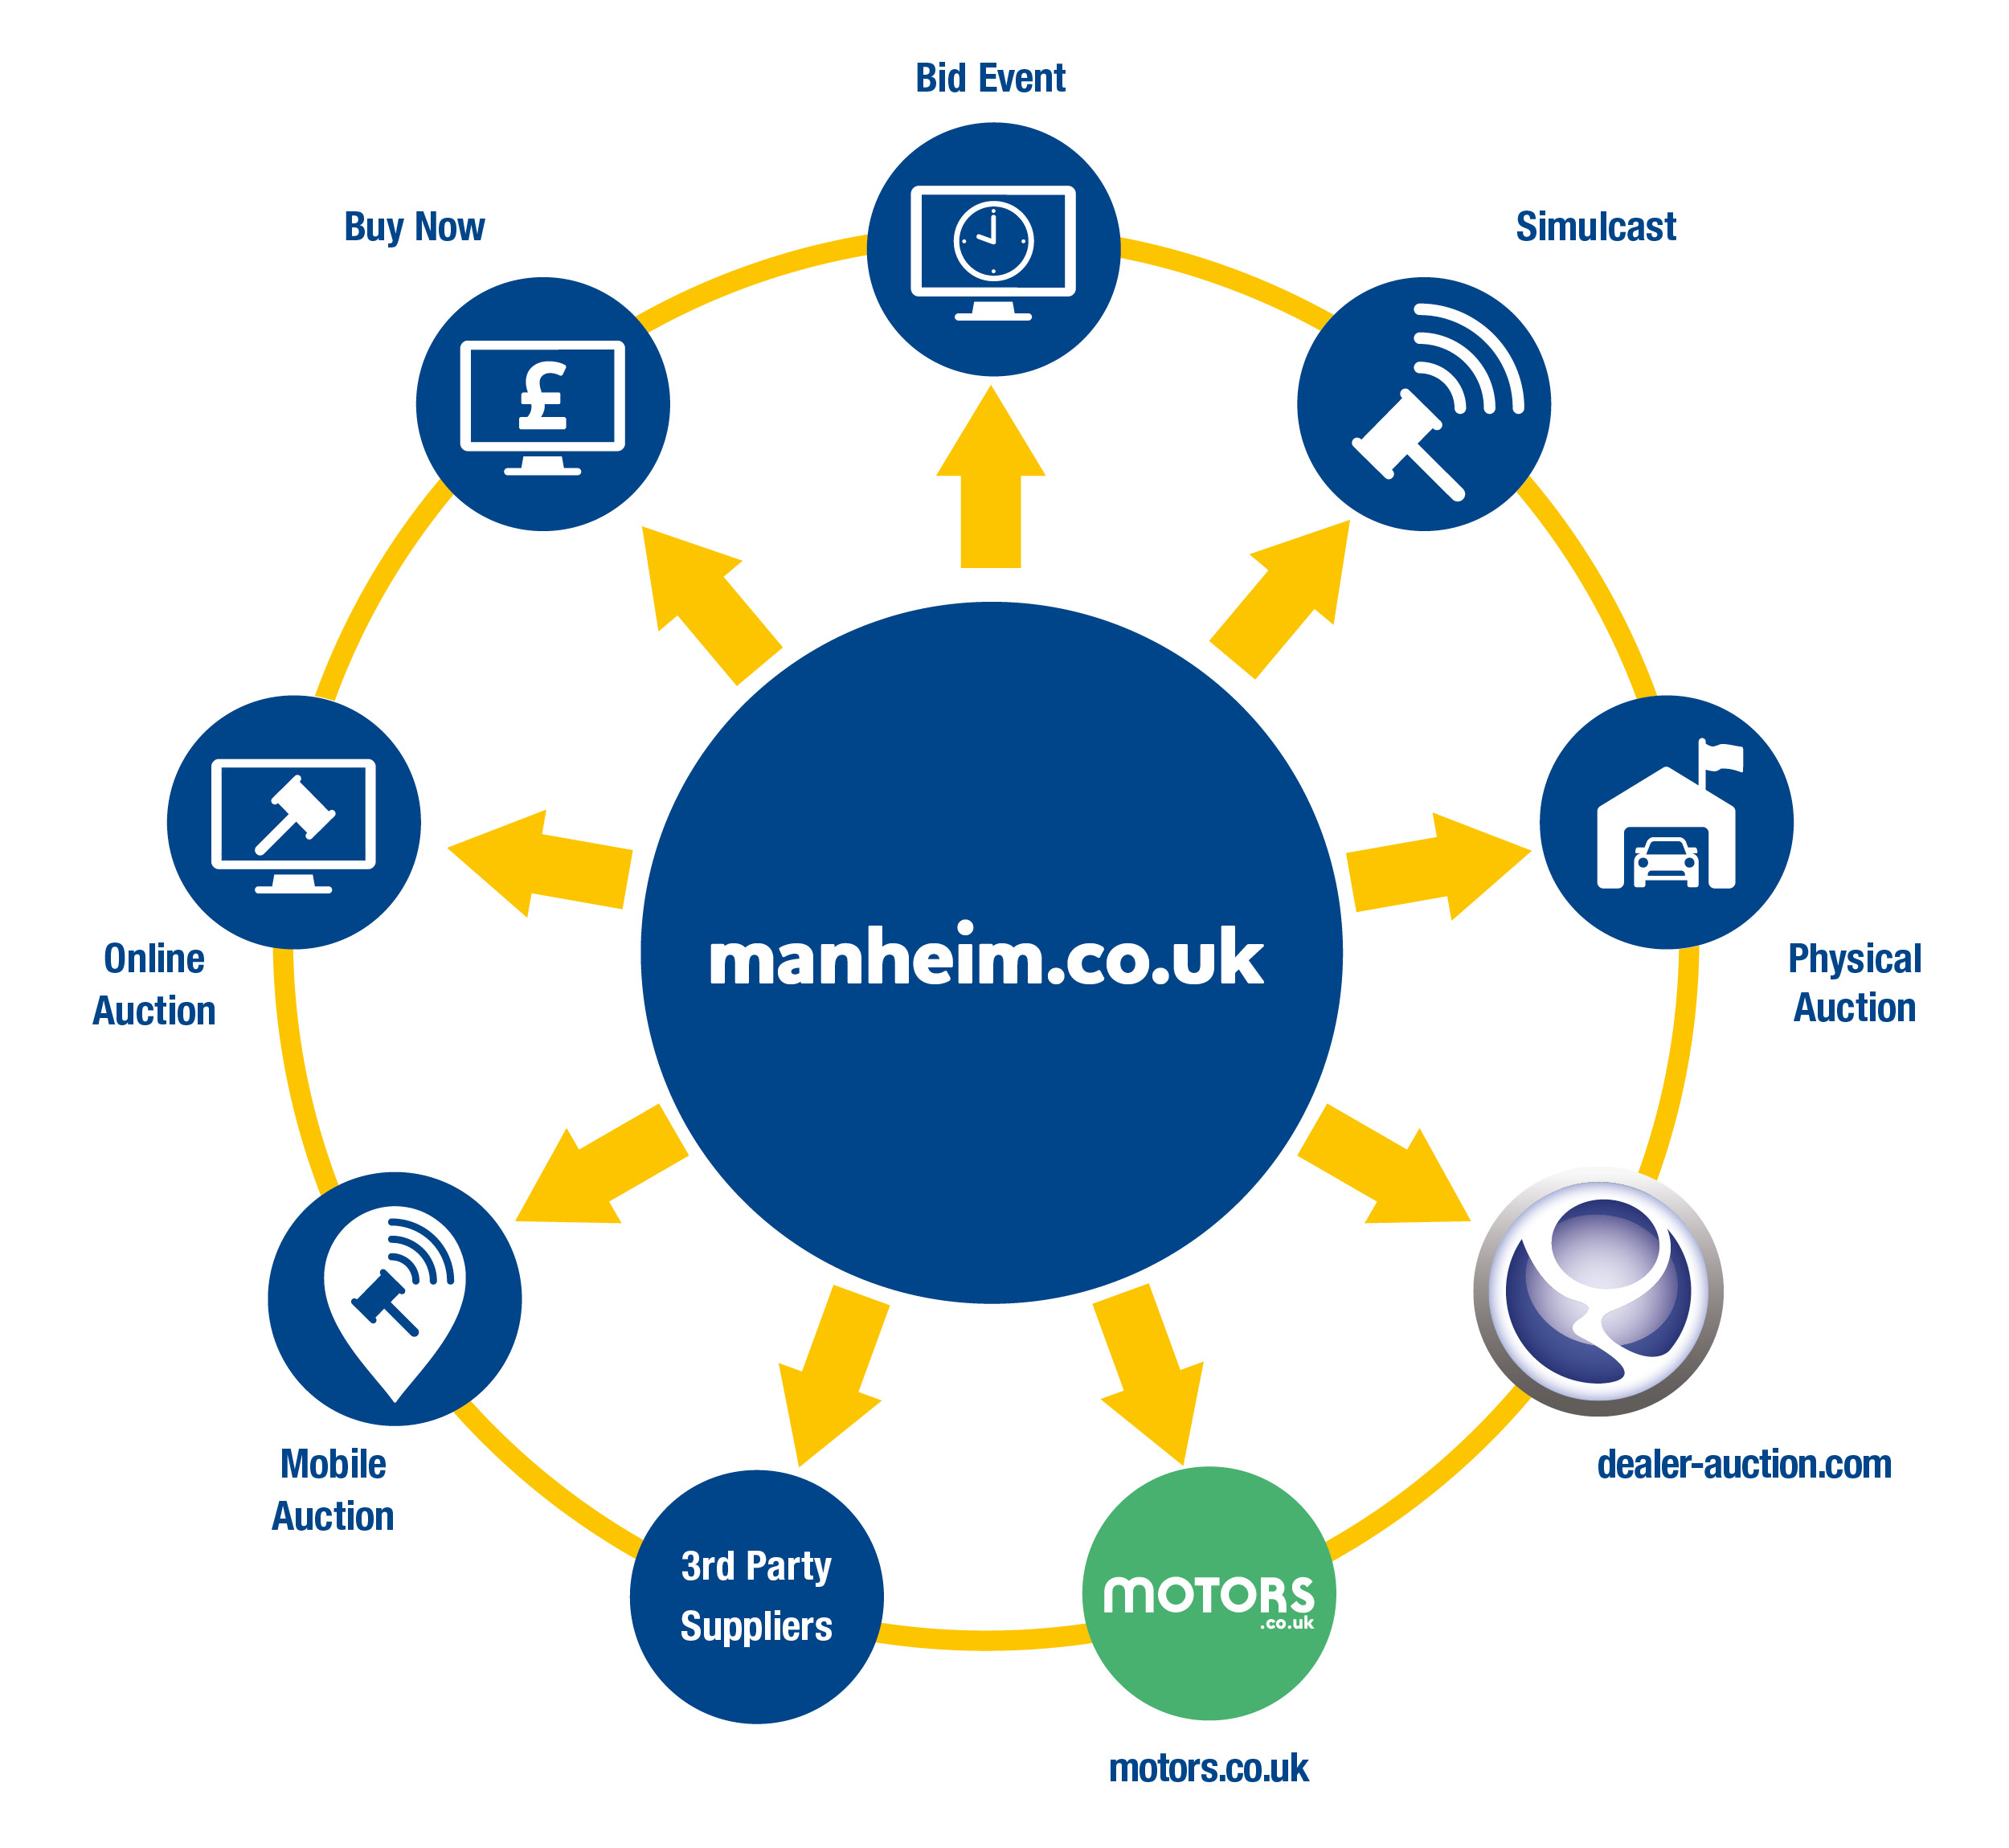 Channel management at Manheim